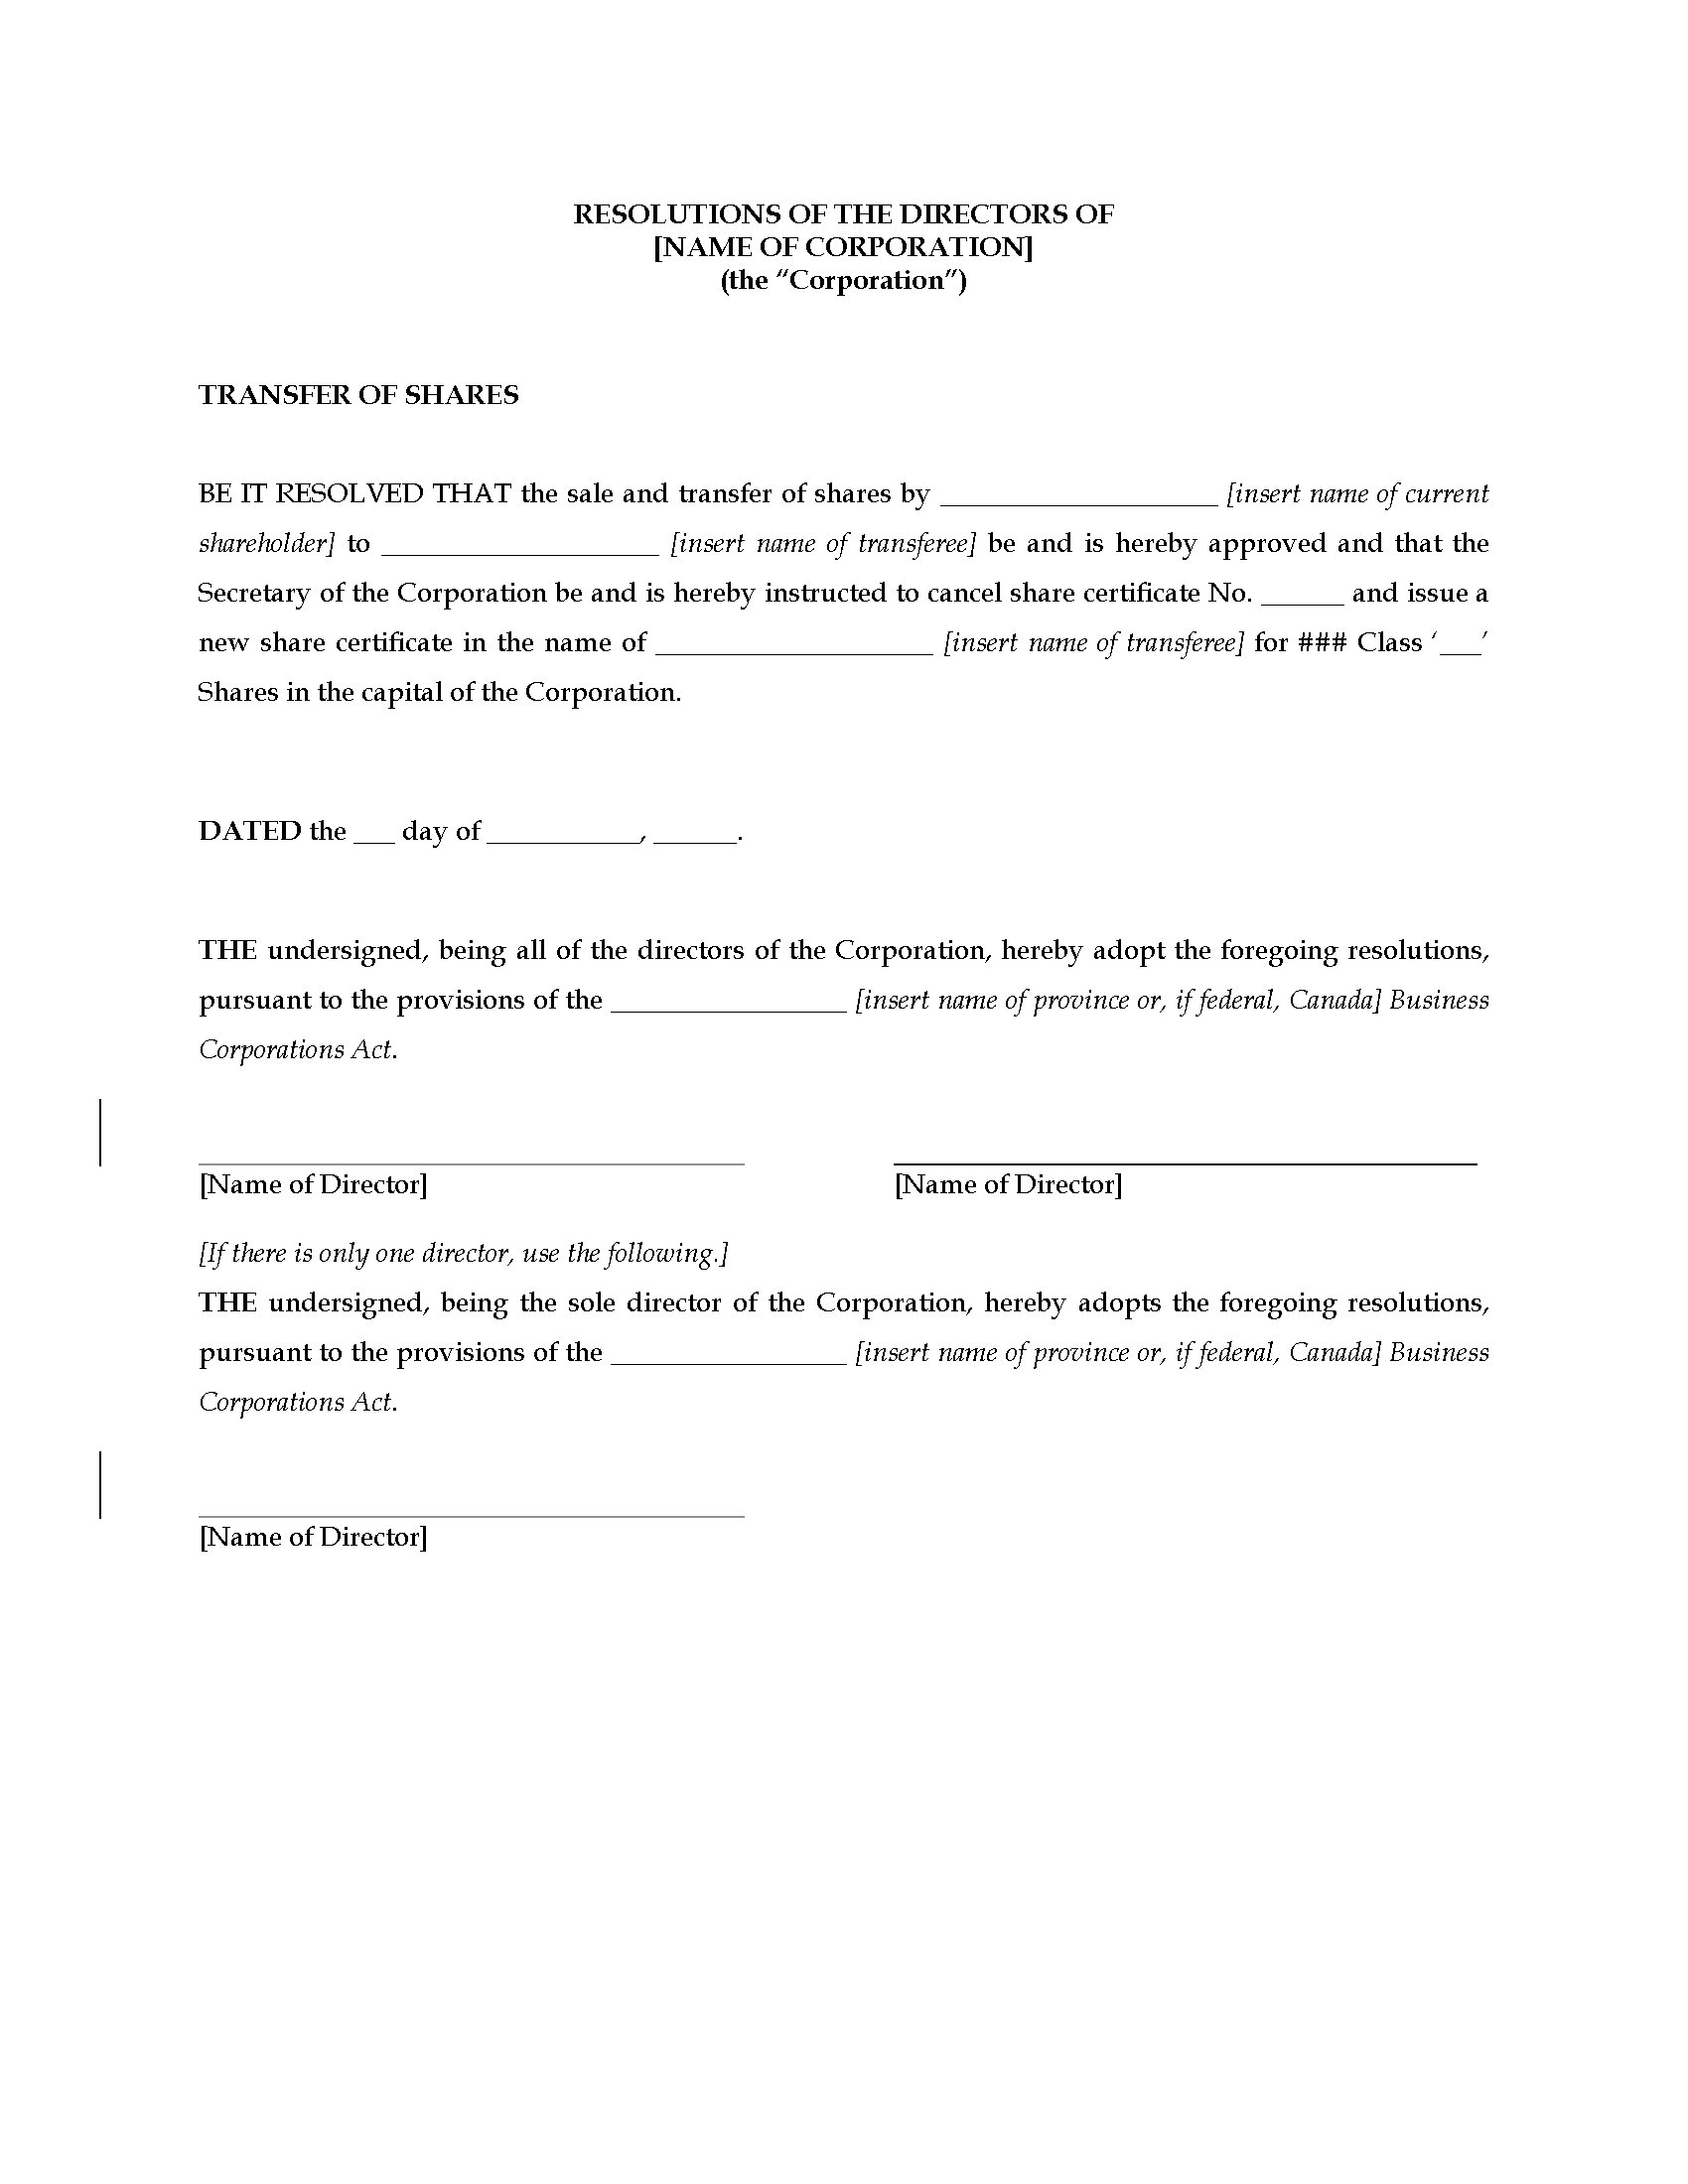 resolution of trustees template - canada directors resolution approving share transfer